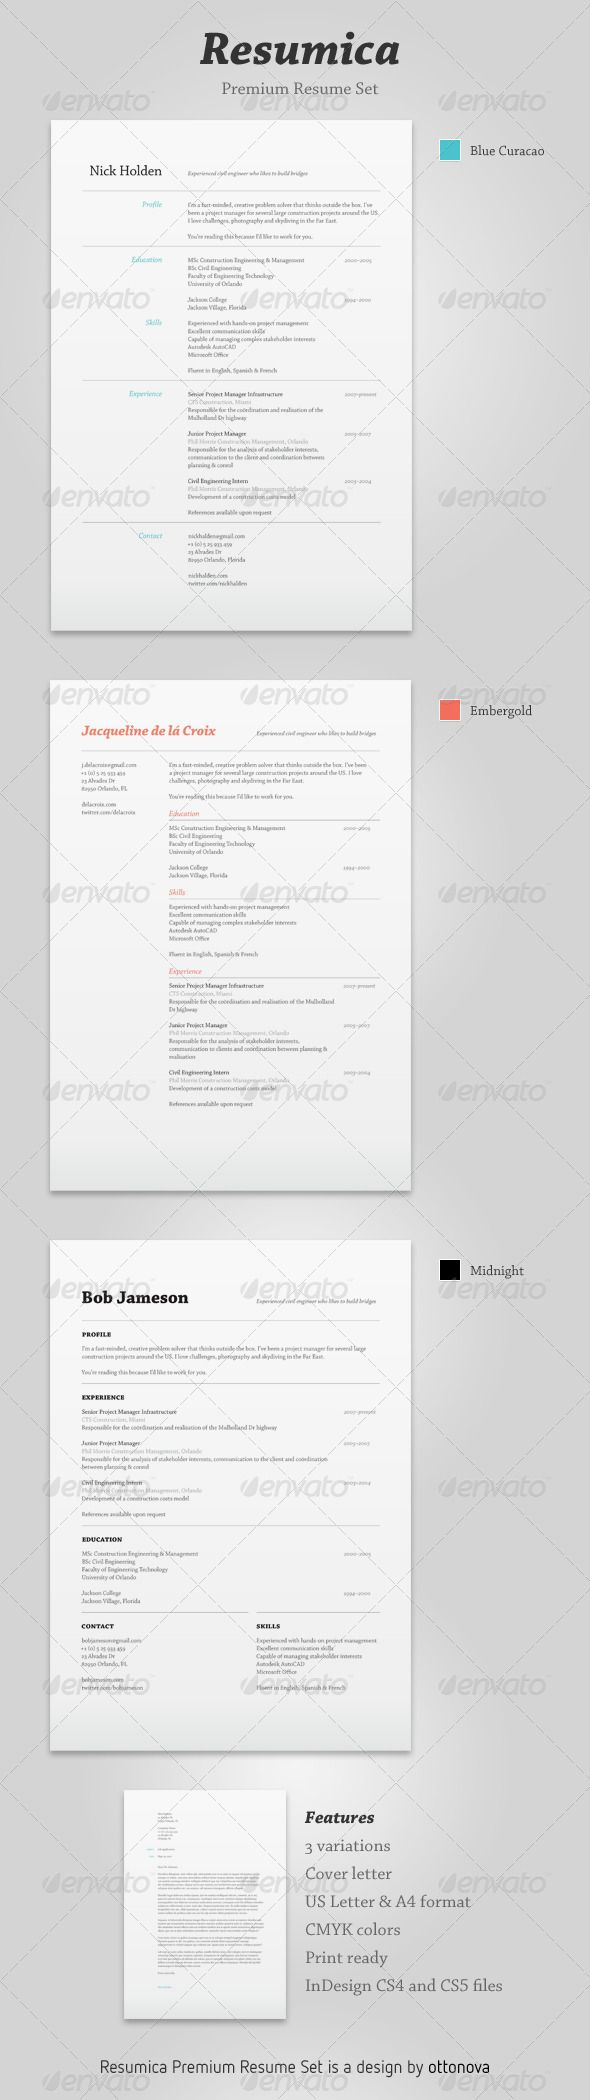 27 best Indesign Resume Templates images on Pinterest | Curriculum ...